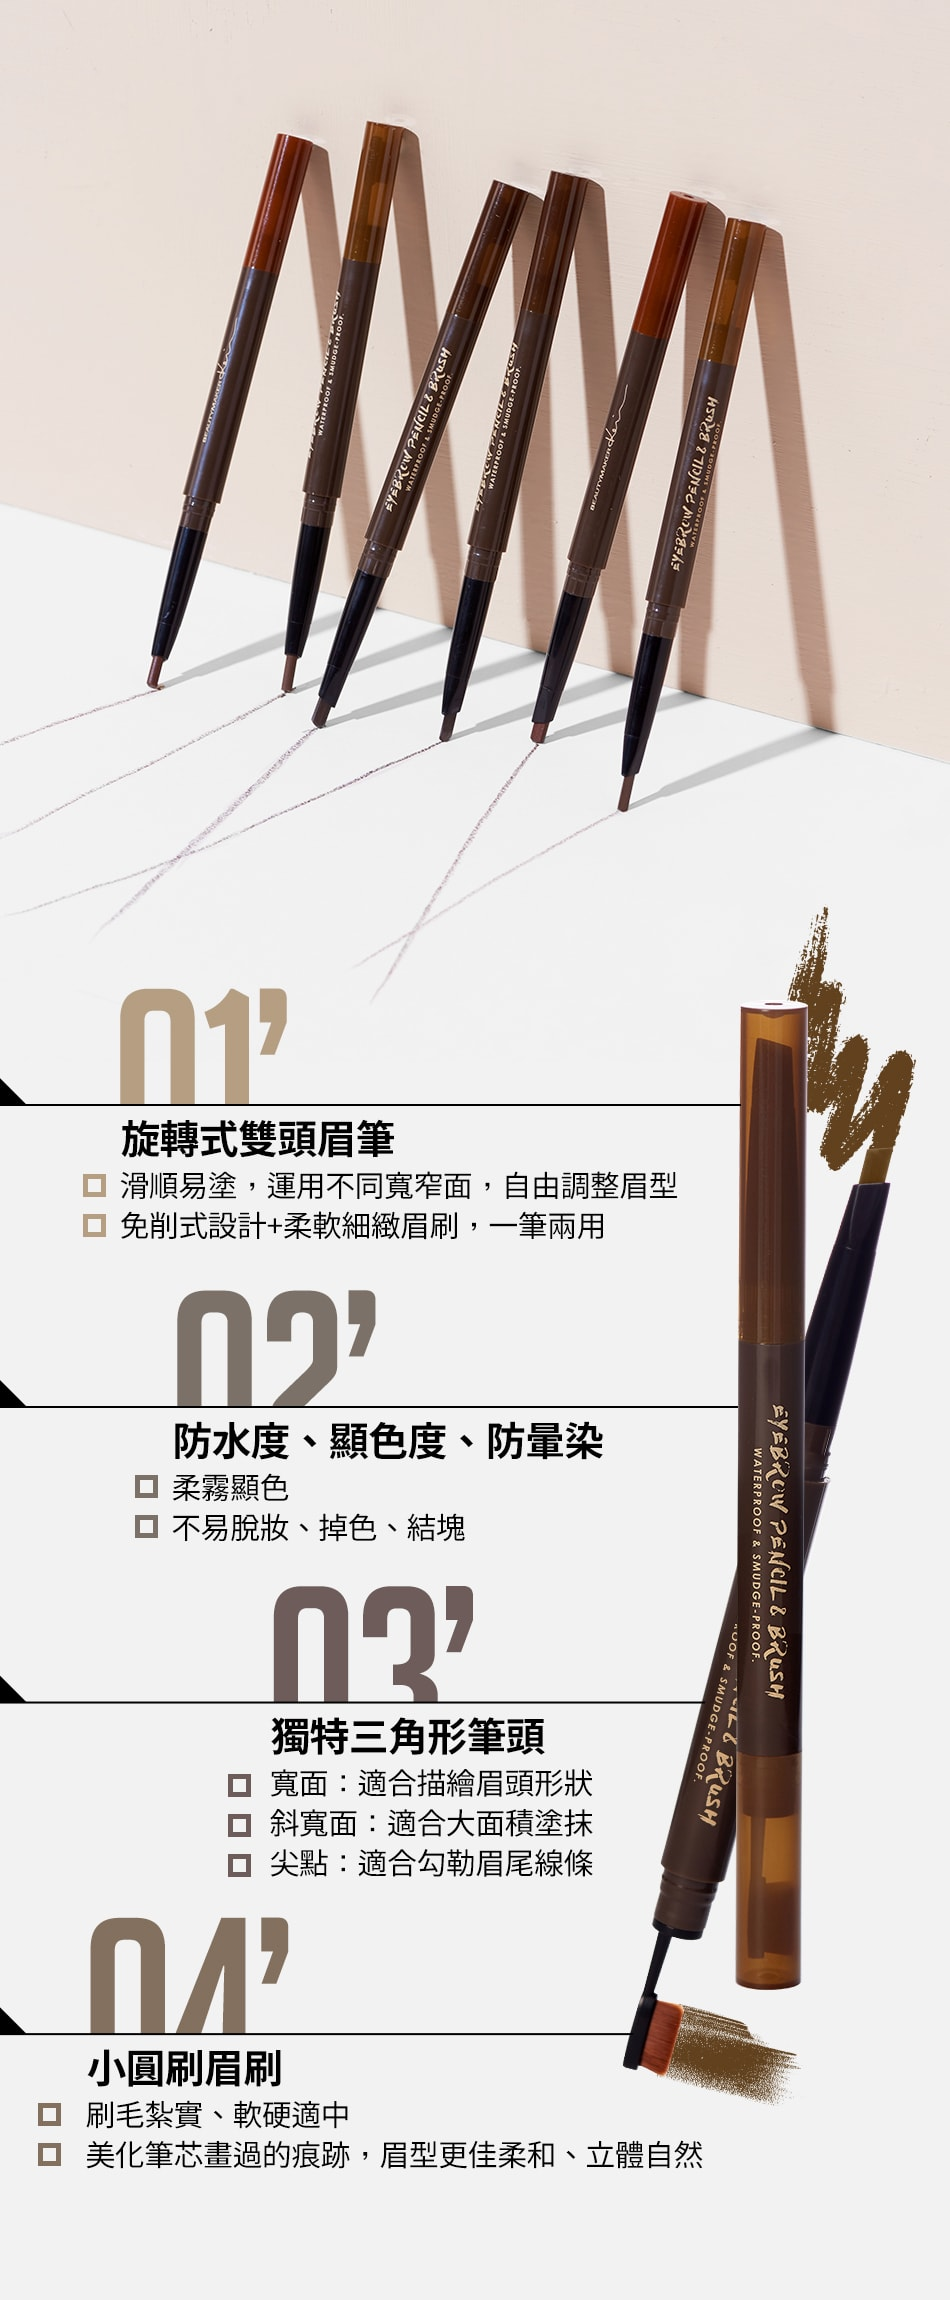 Eyebrow Pencil & Brush - Features